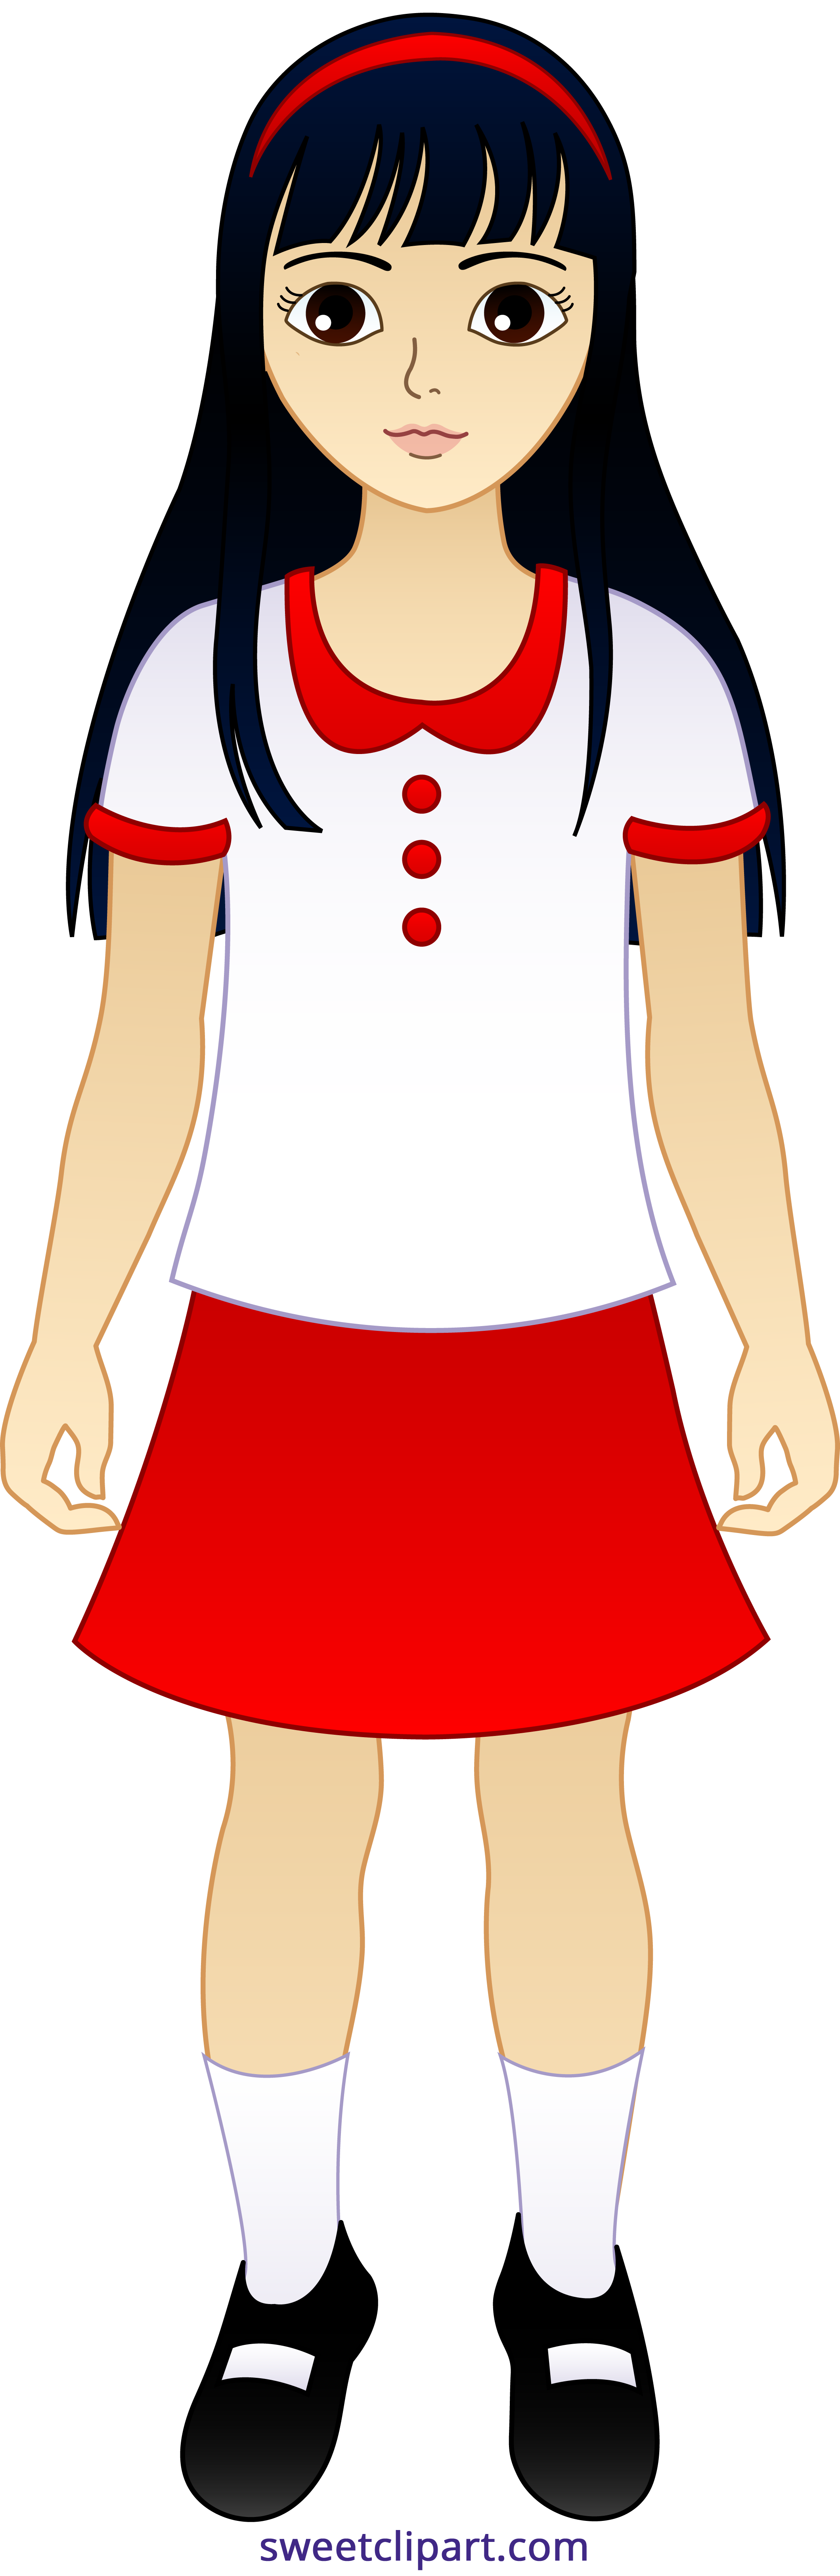 Girl clipart png. Little boy and at